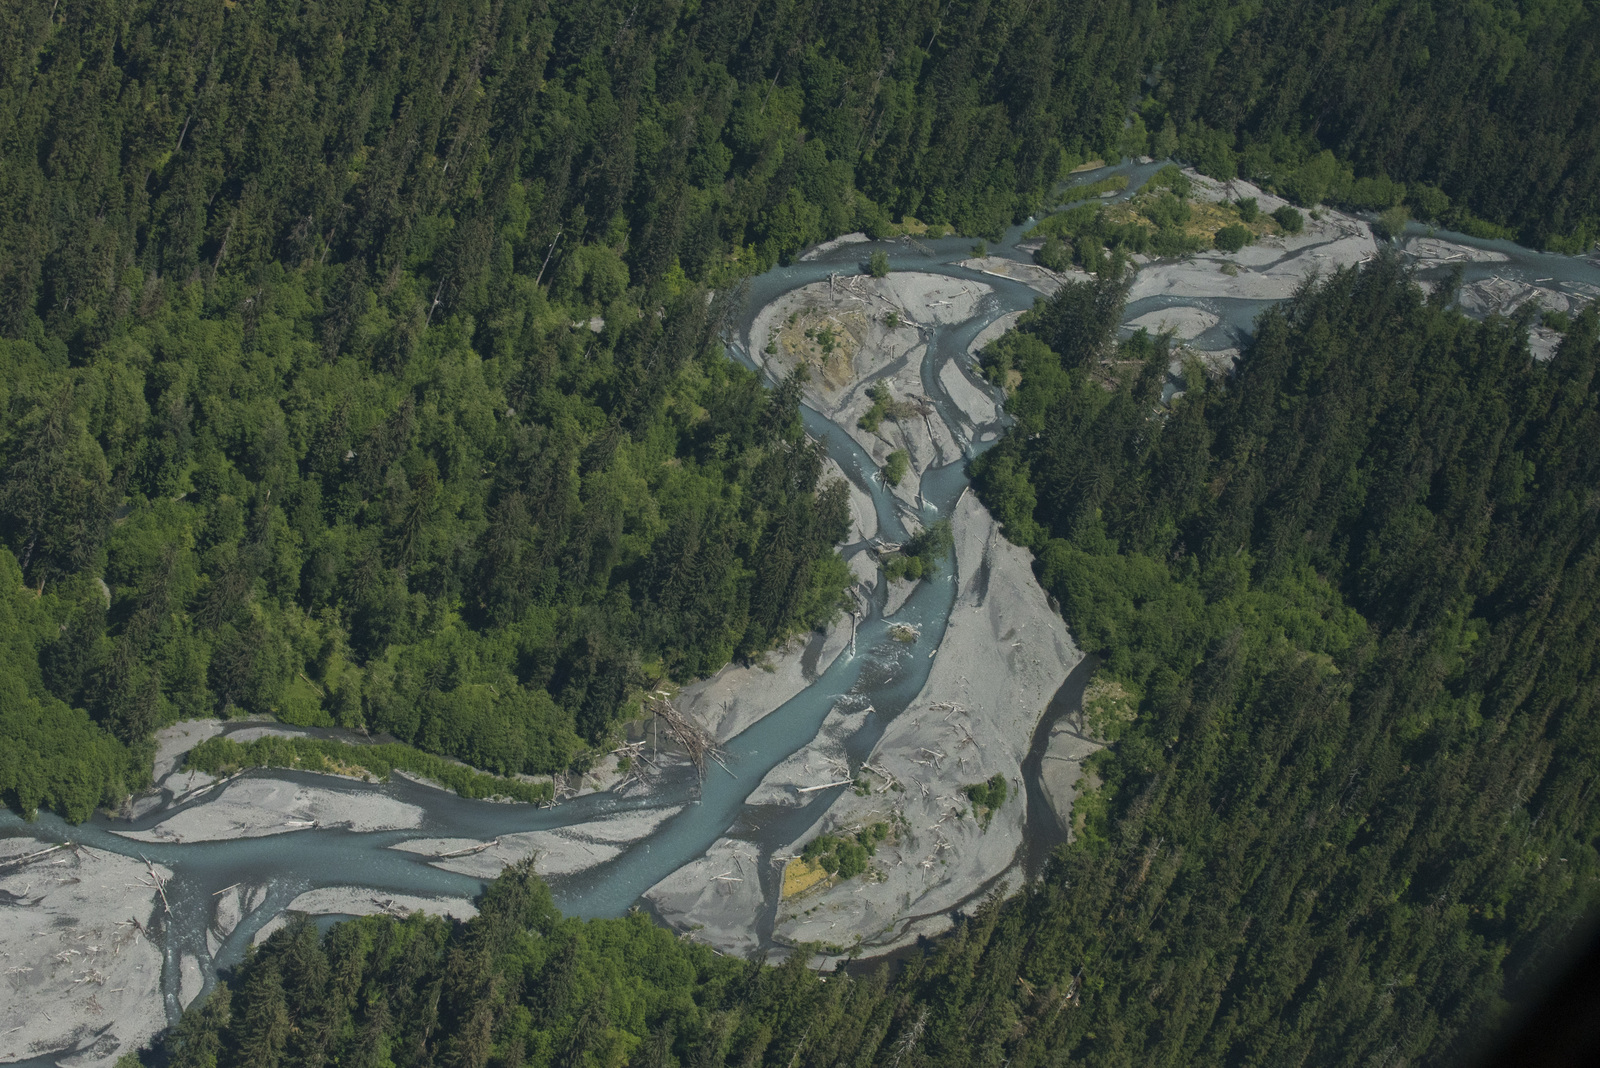 The Hoh River. Photo by Hannah Letinich/LightHawk.